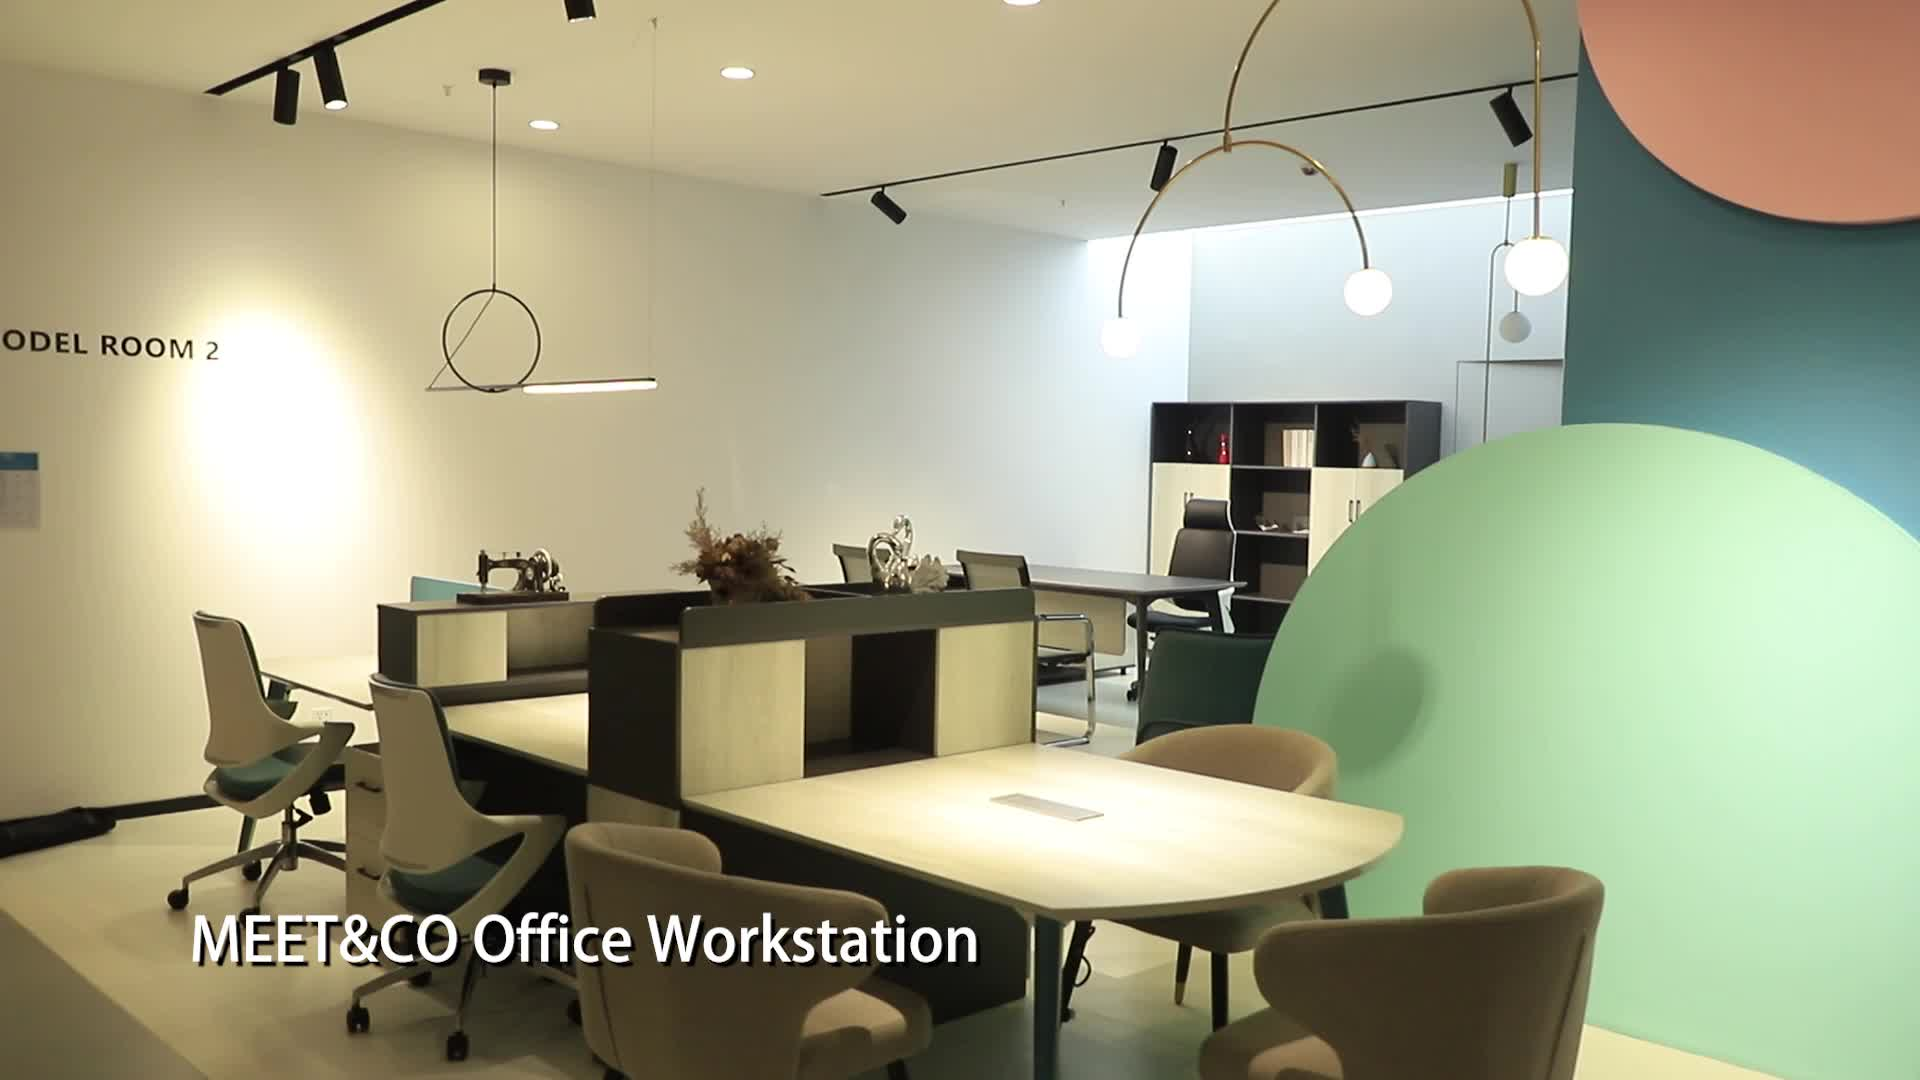 Office Furniture office workstation 2, 4, 6 person workstation office furniture manufacturer office desk